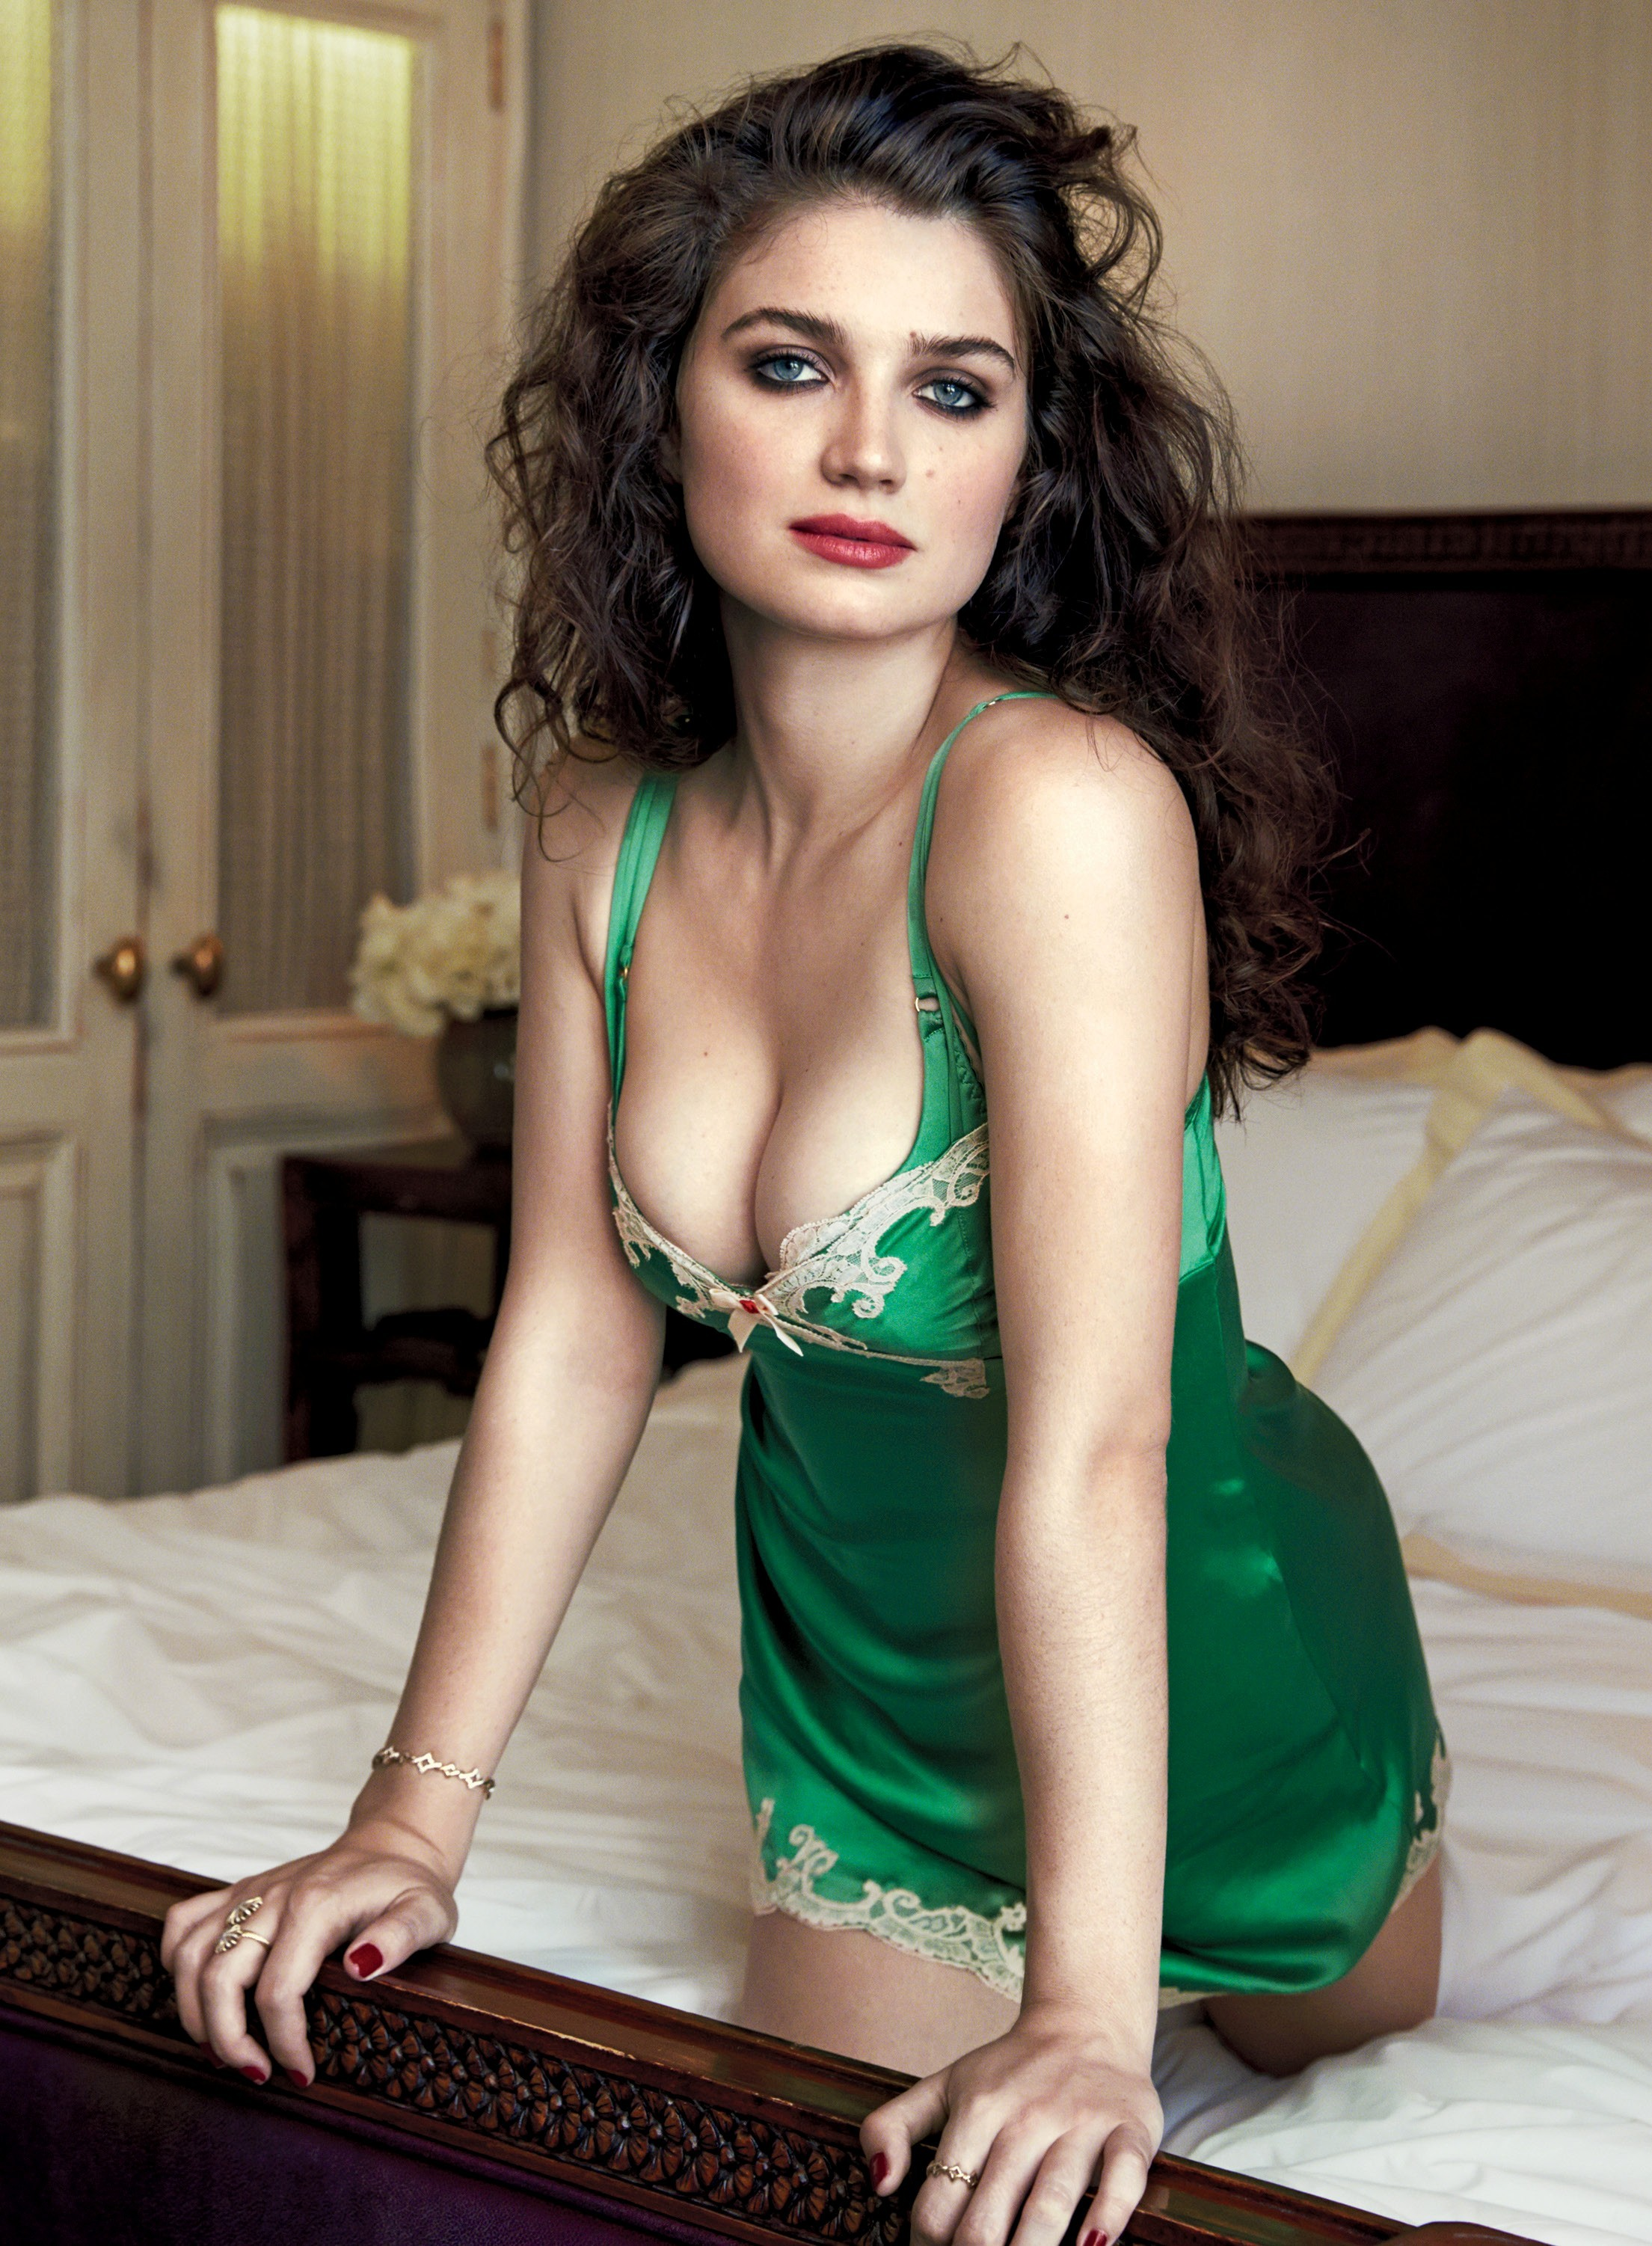 Eve Hewson Nude Photos and Videos nude (61 photos), Feet Celebrites pictures